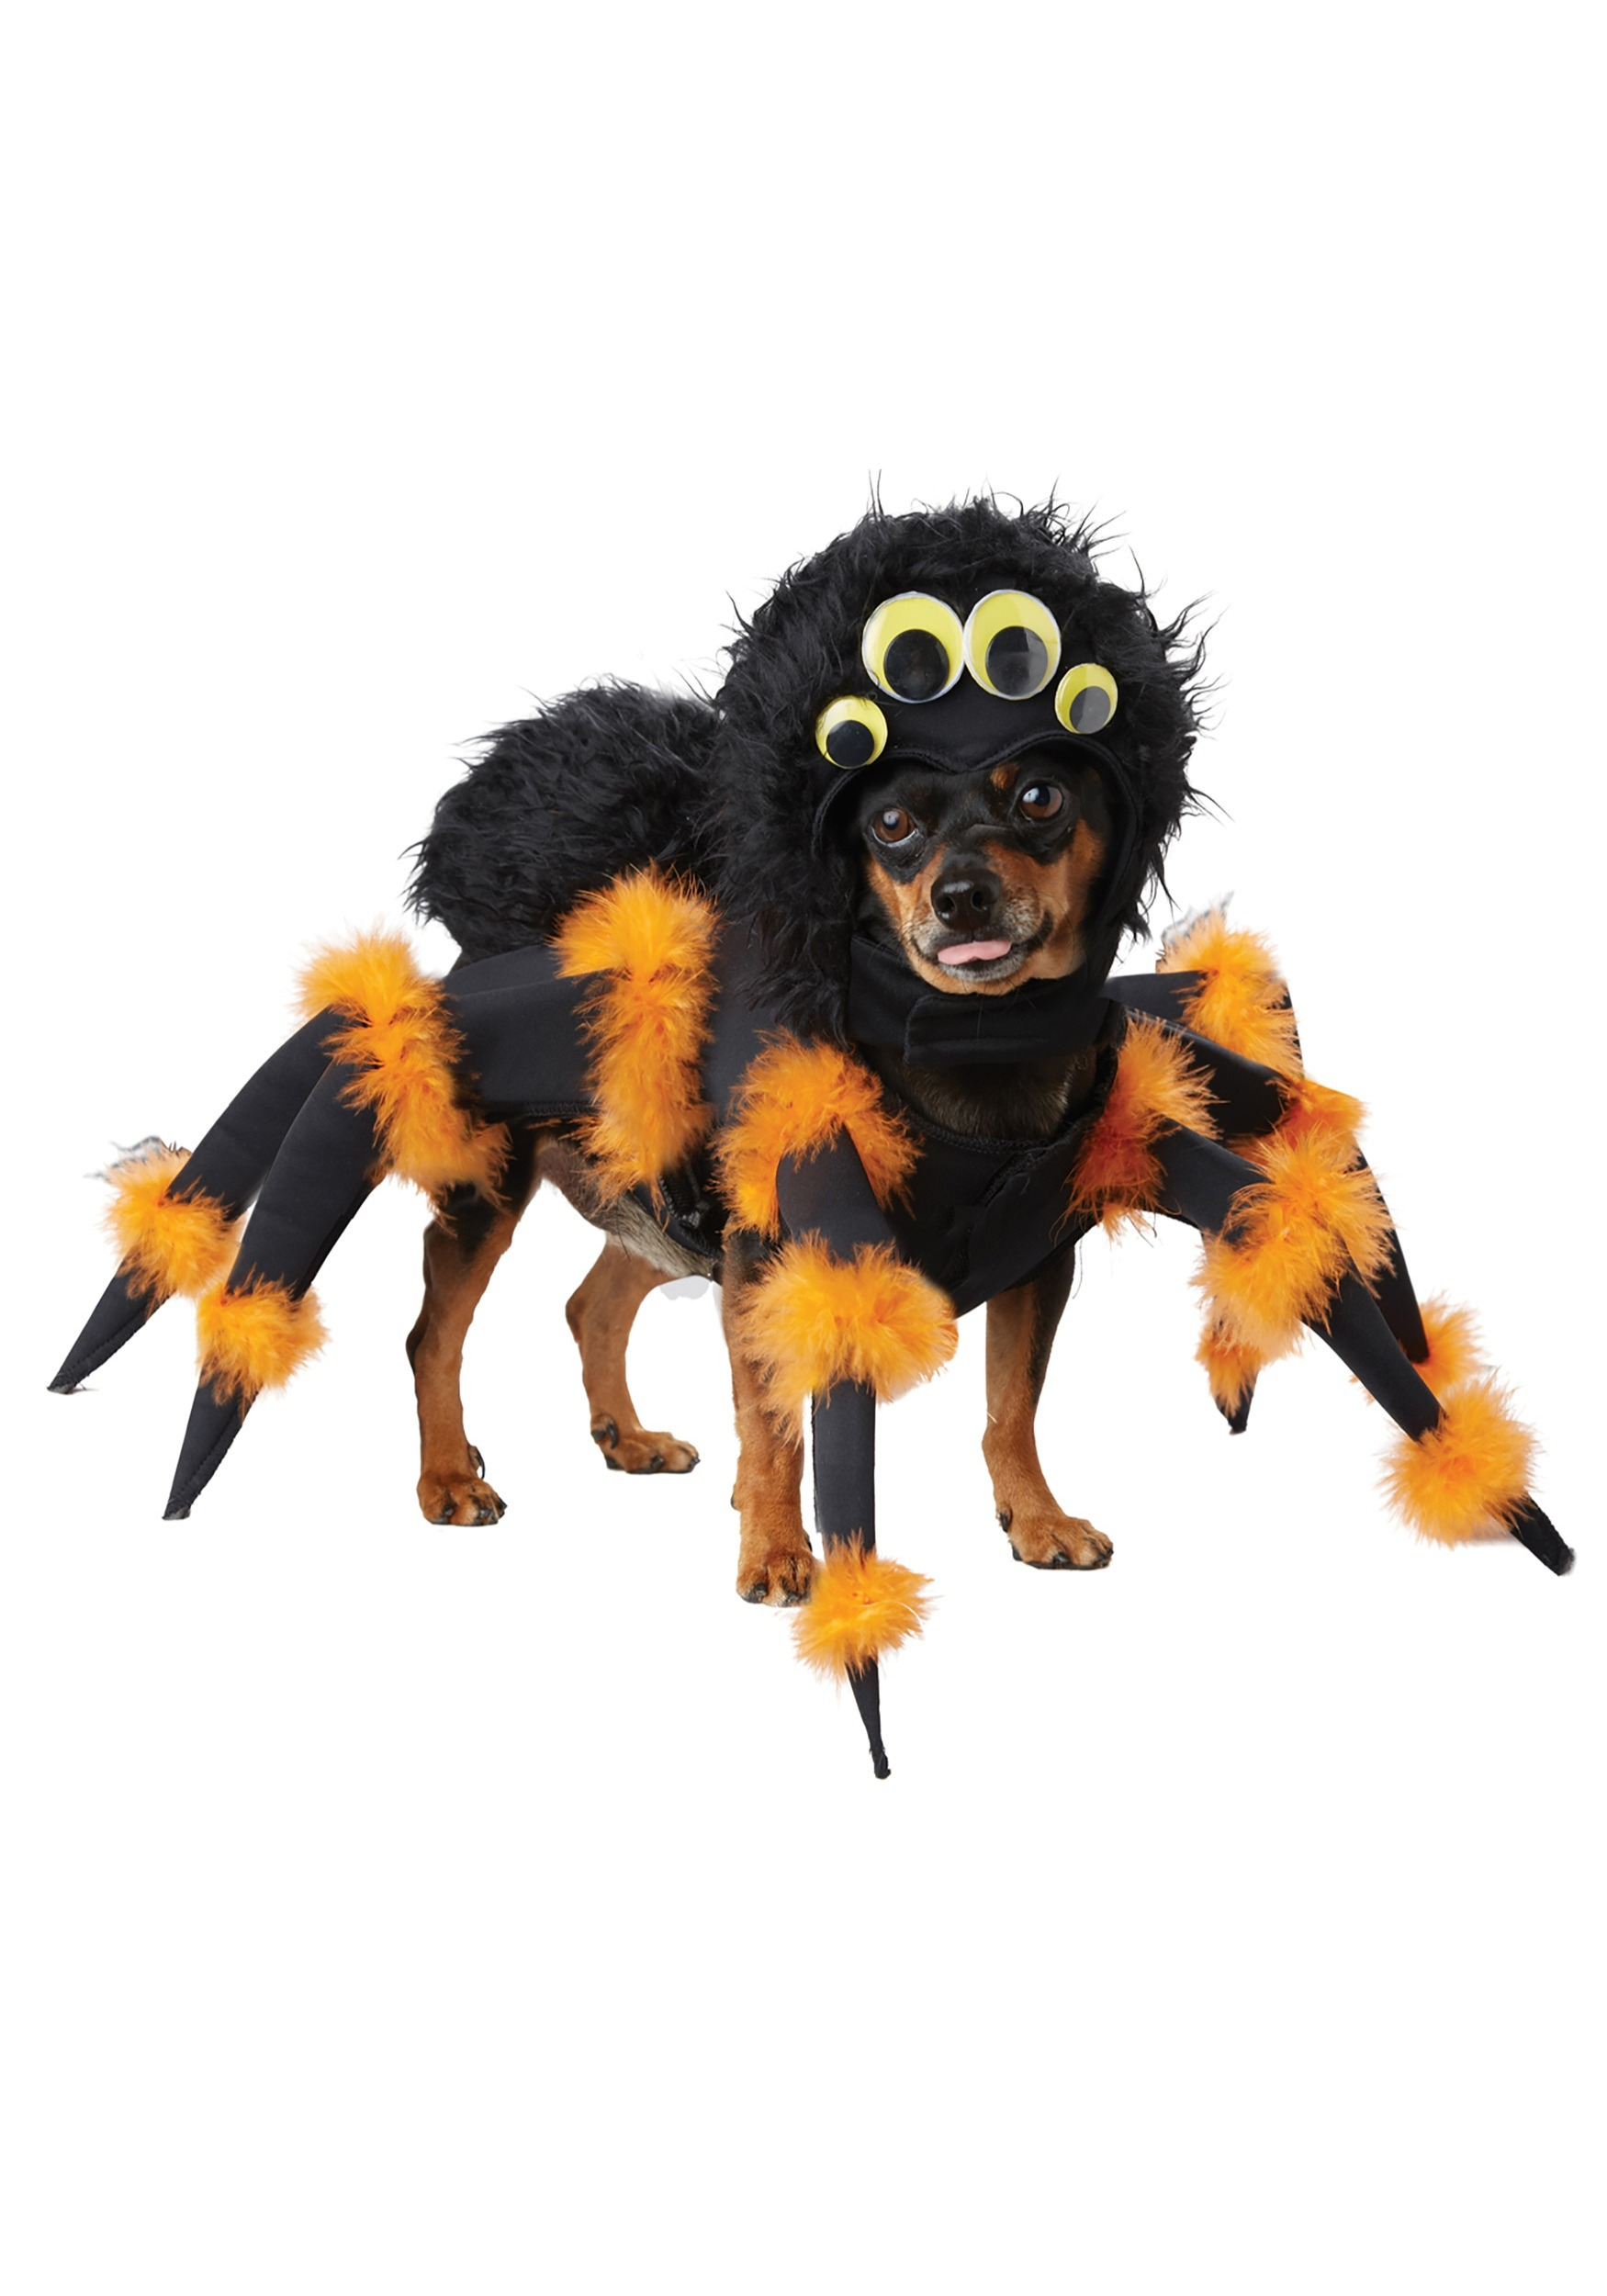 Amy's Daily Dose: Hilarious Pet Costumes for Halloween |Pet Halloween Coustumes